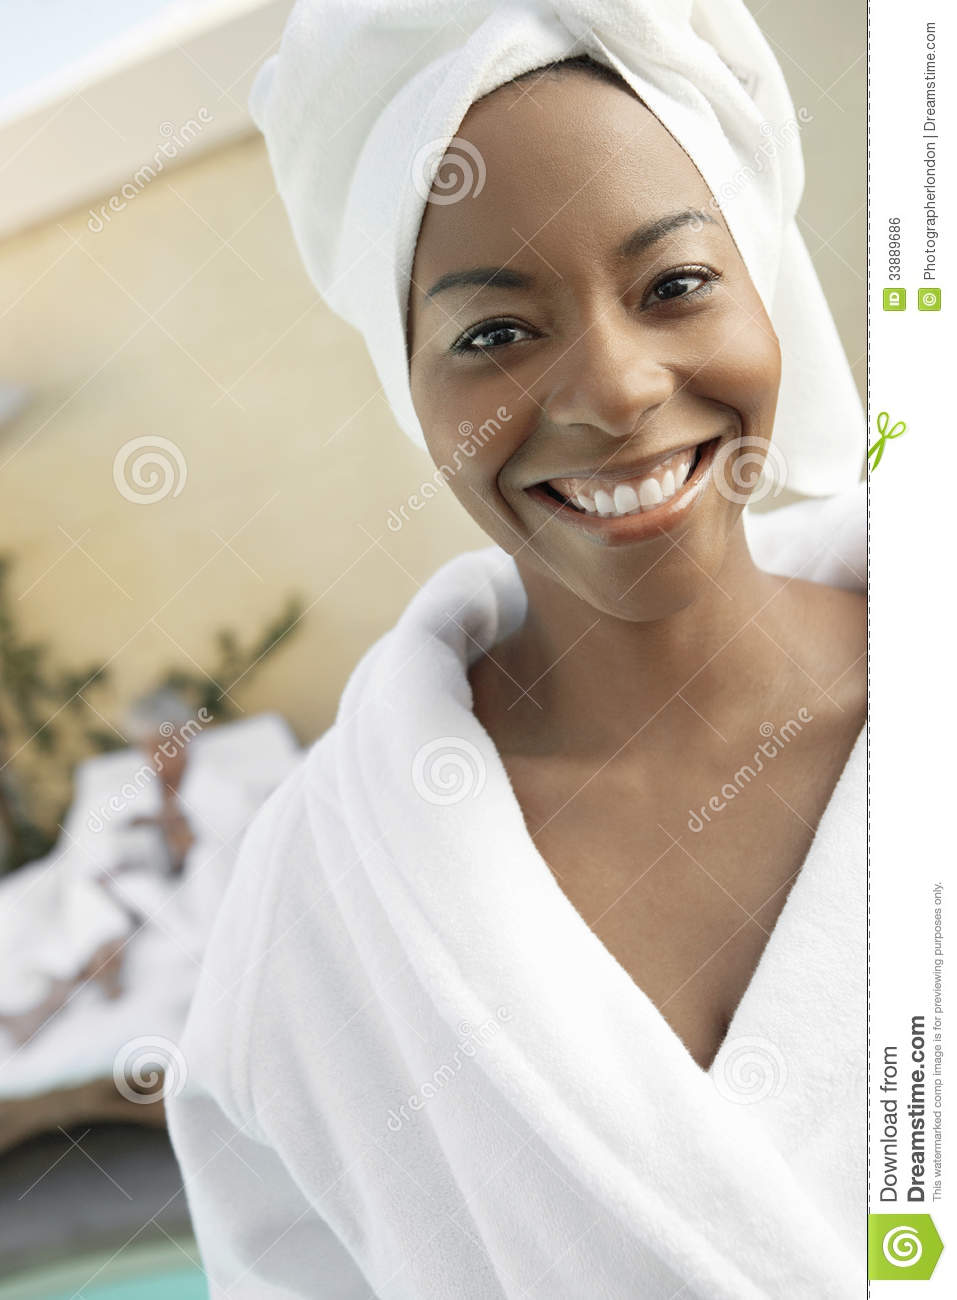 Happy Woman Wearing Bathrobe In Dayspa Stock Photo - Image of ... f553ab2d2